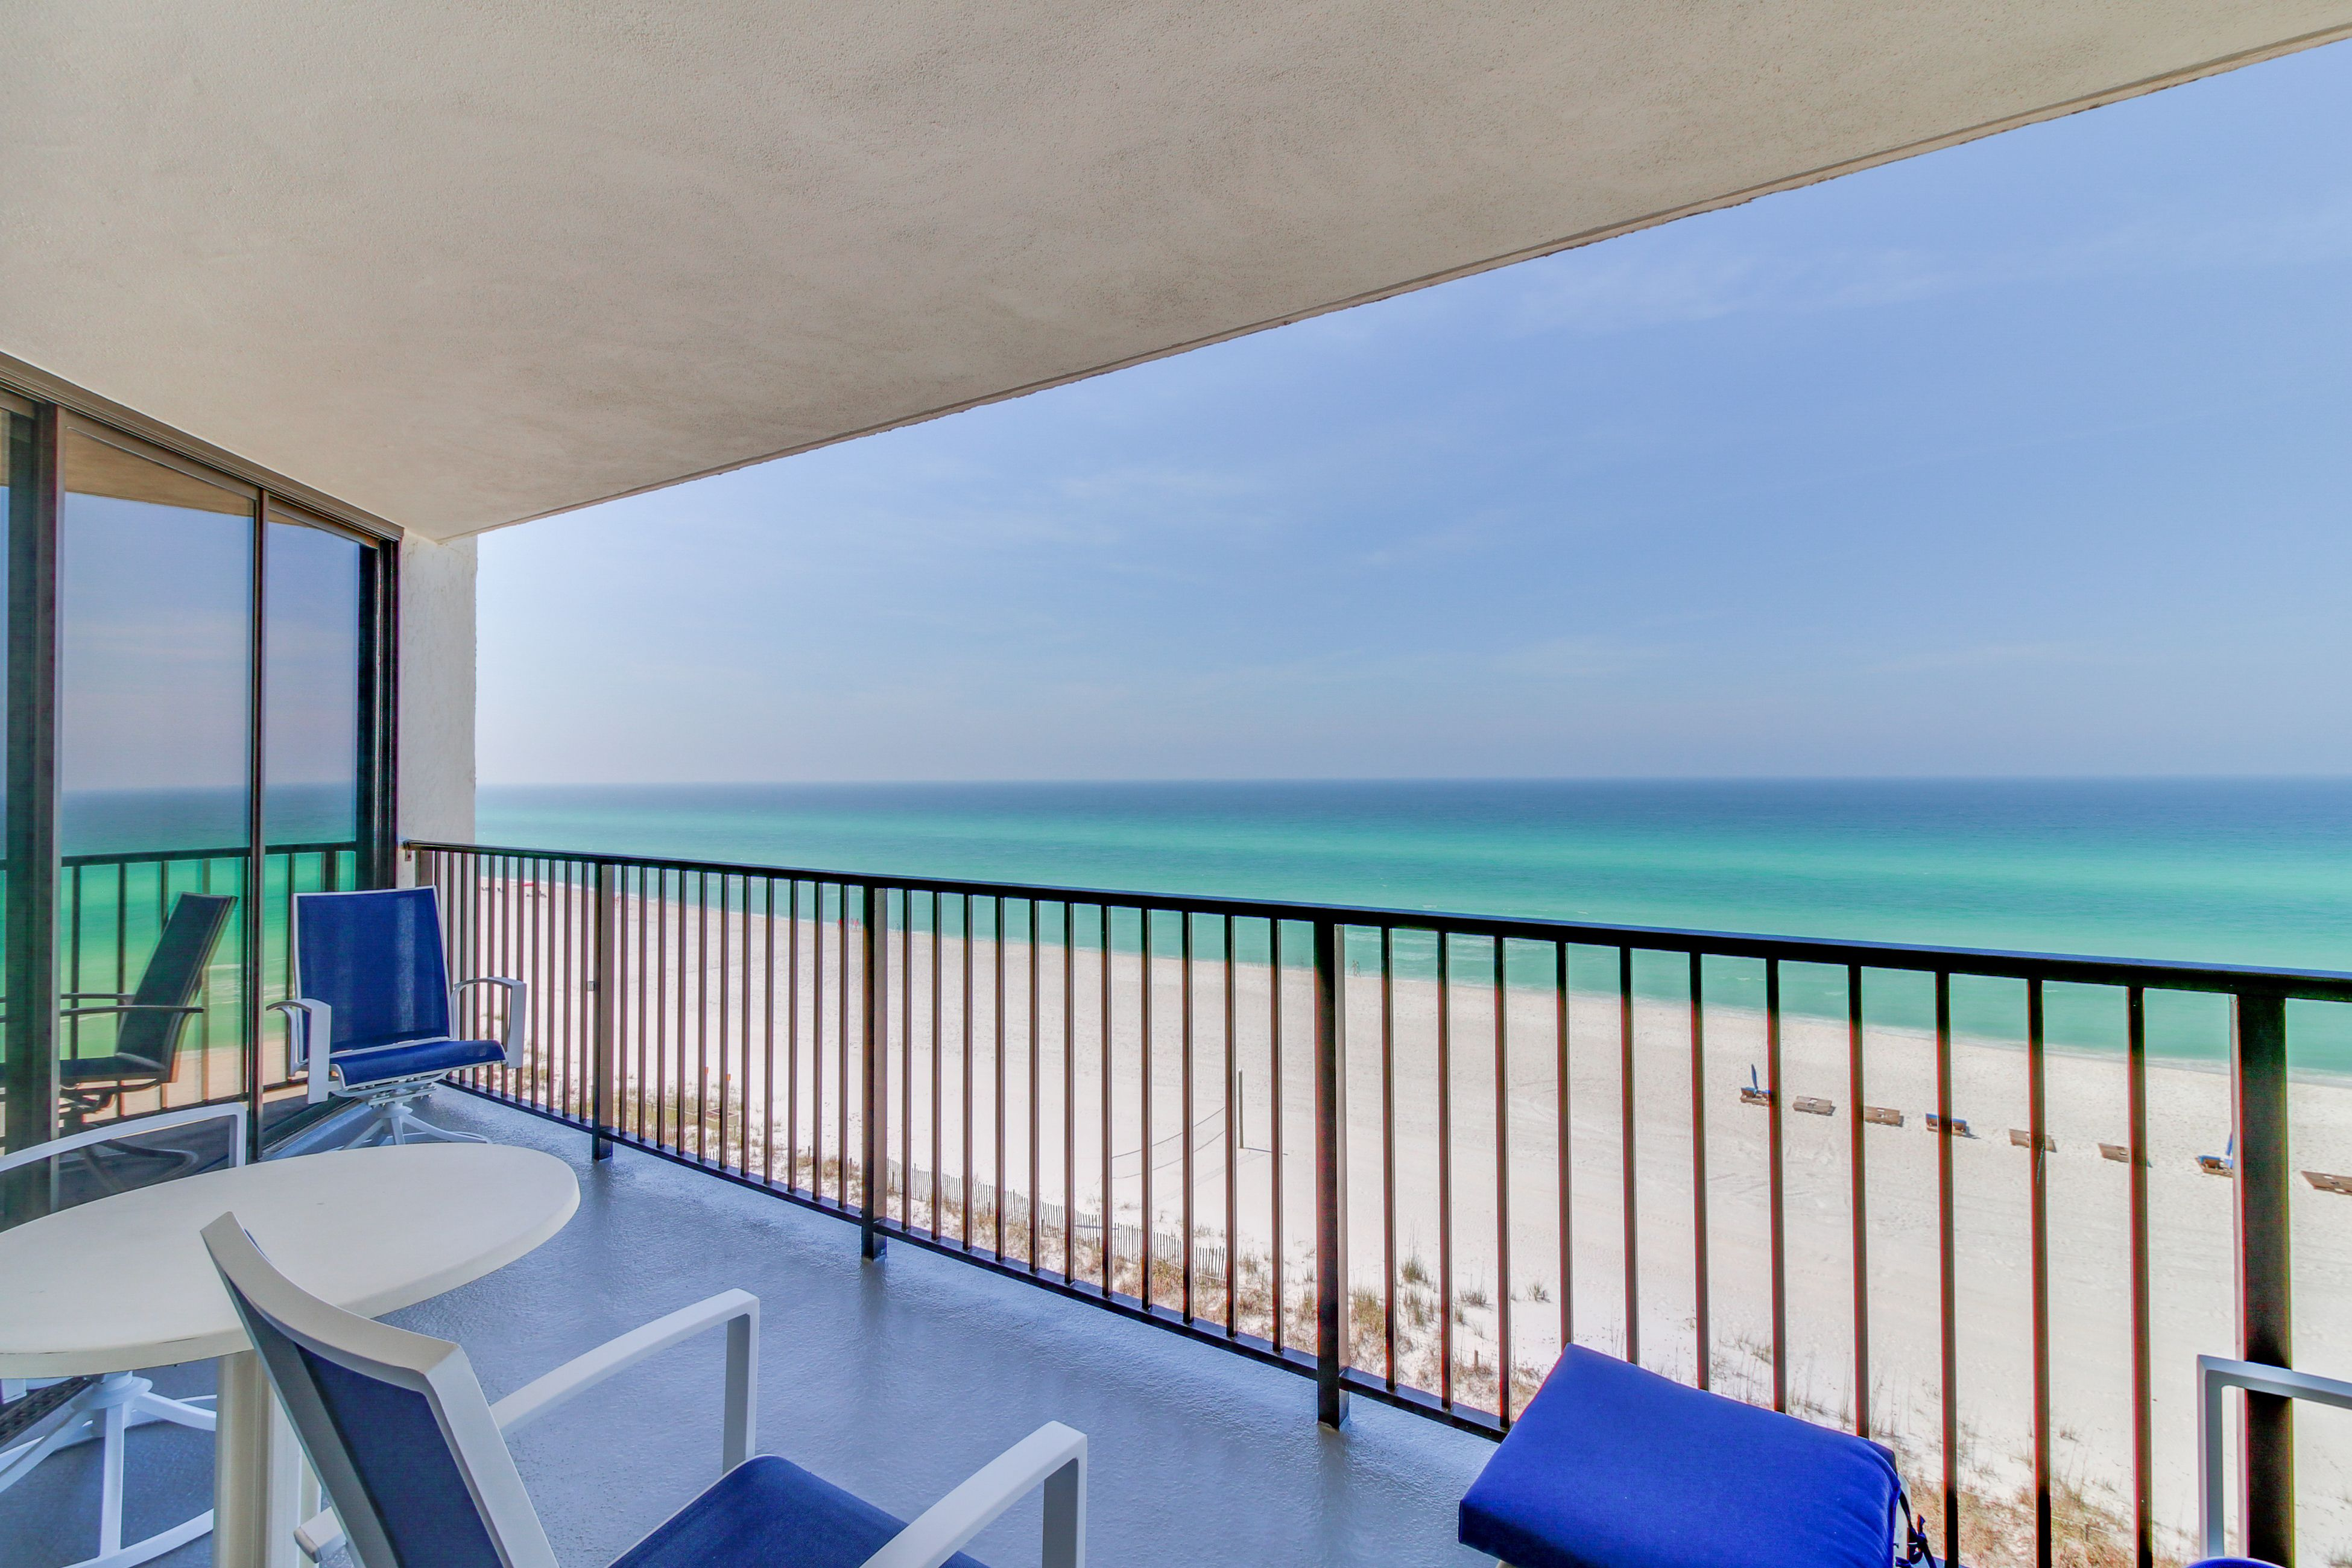 Aquavista 503e Panama City Beach Fl Enjoy The Fresh Ocean Breezes And Long Lazy Afternoons When You Book Your Stay At This Oceanfront Panama City Panama Panama City Beach